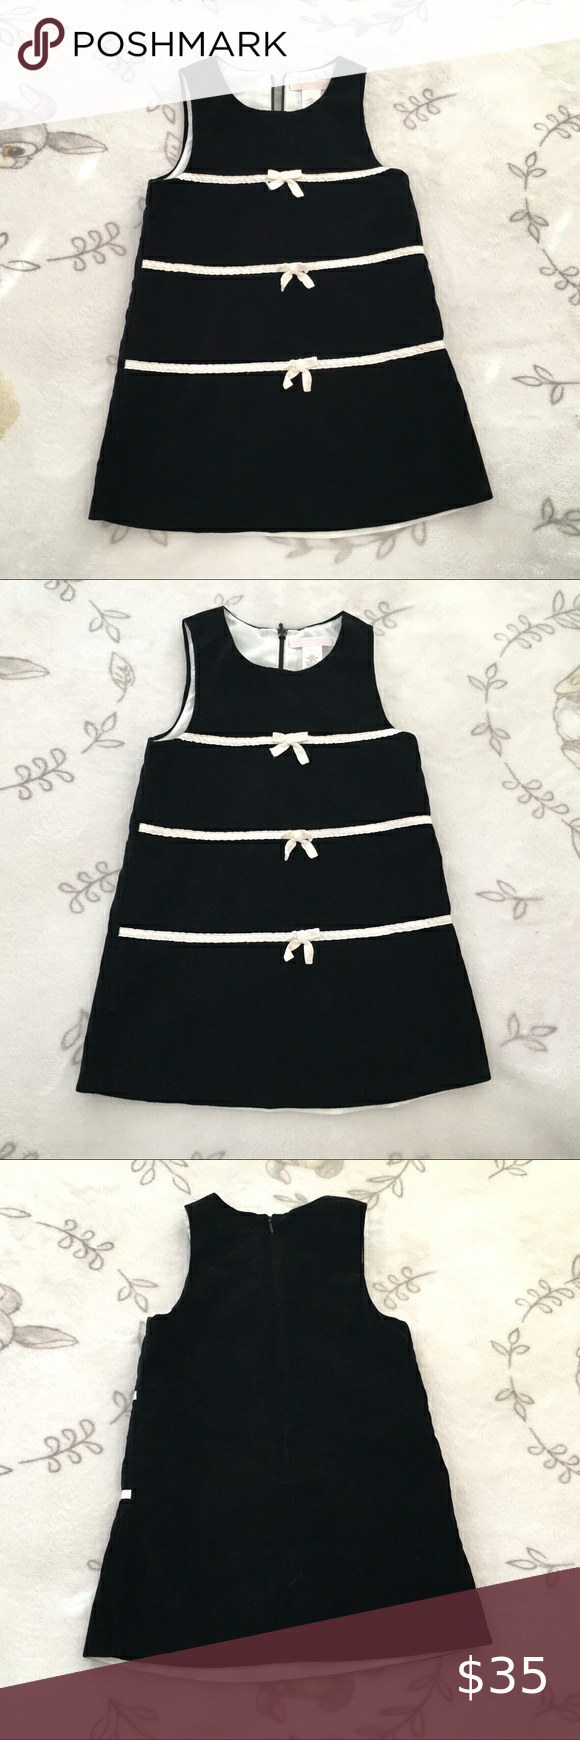 Toddler Girls Janie And Jack Black Dress 2t In 2021 2t Dress Janie And Jack Toddler Girl [ 1740 x 580 Pixel ]